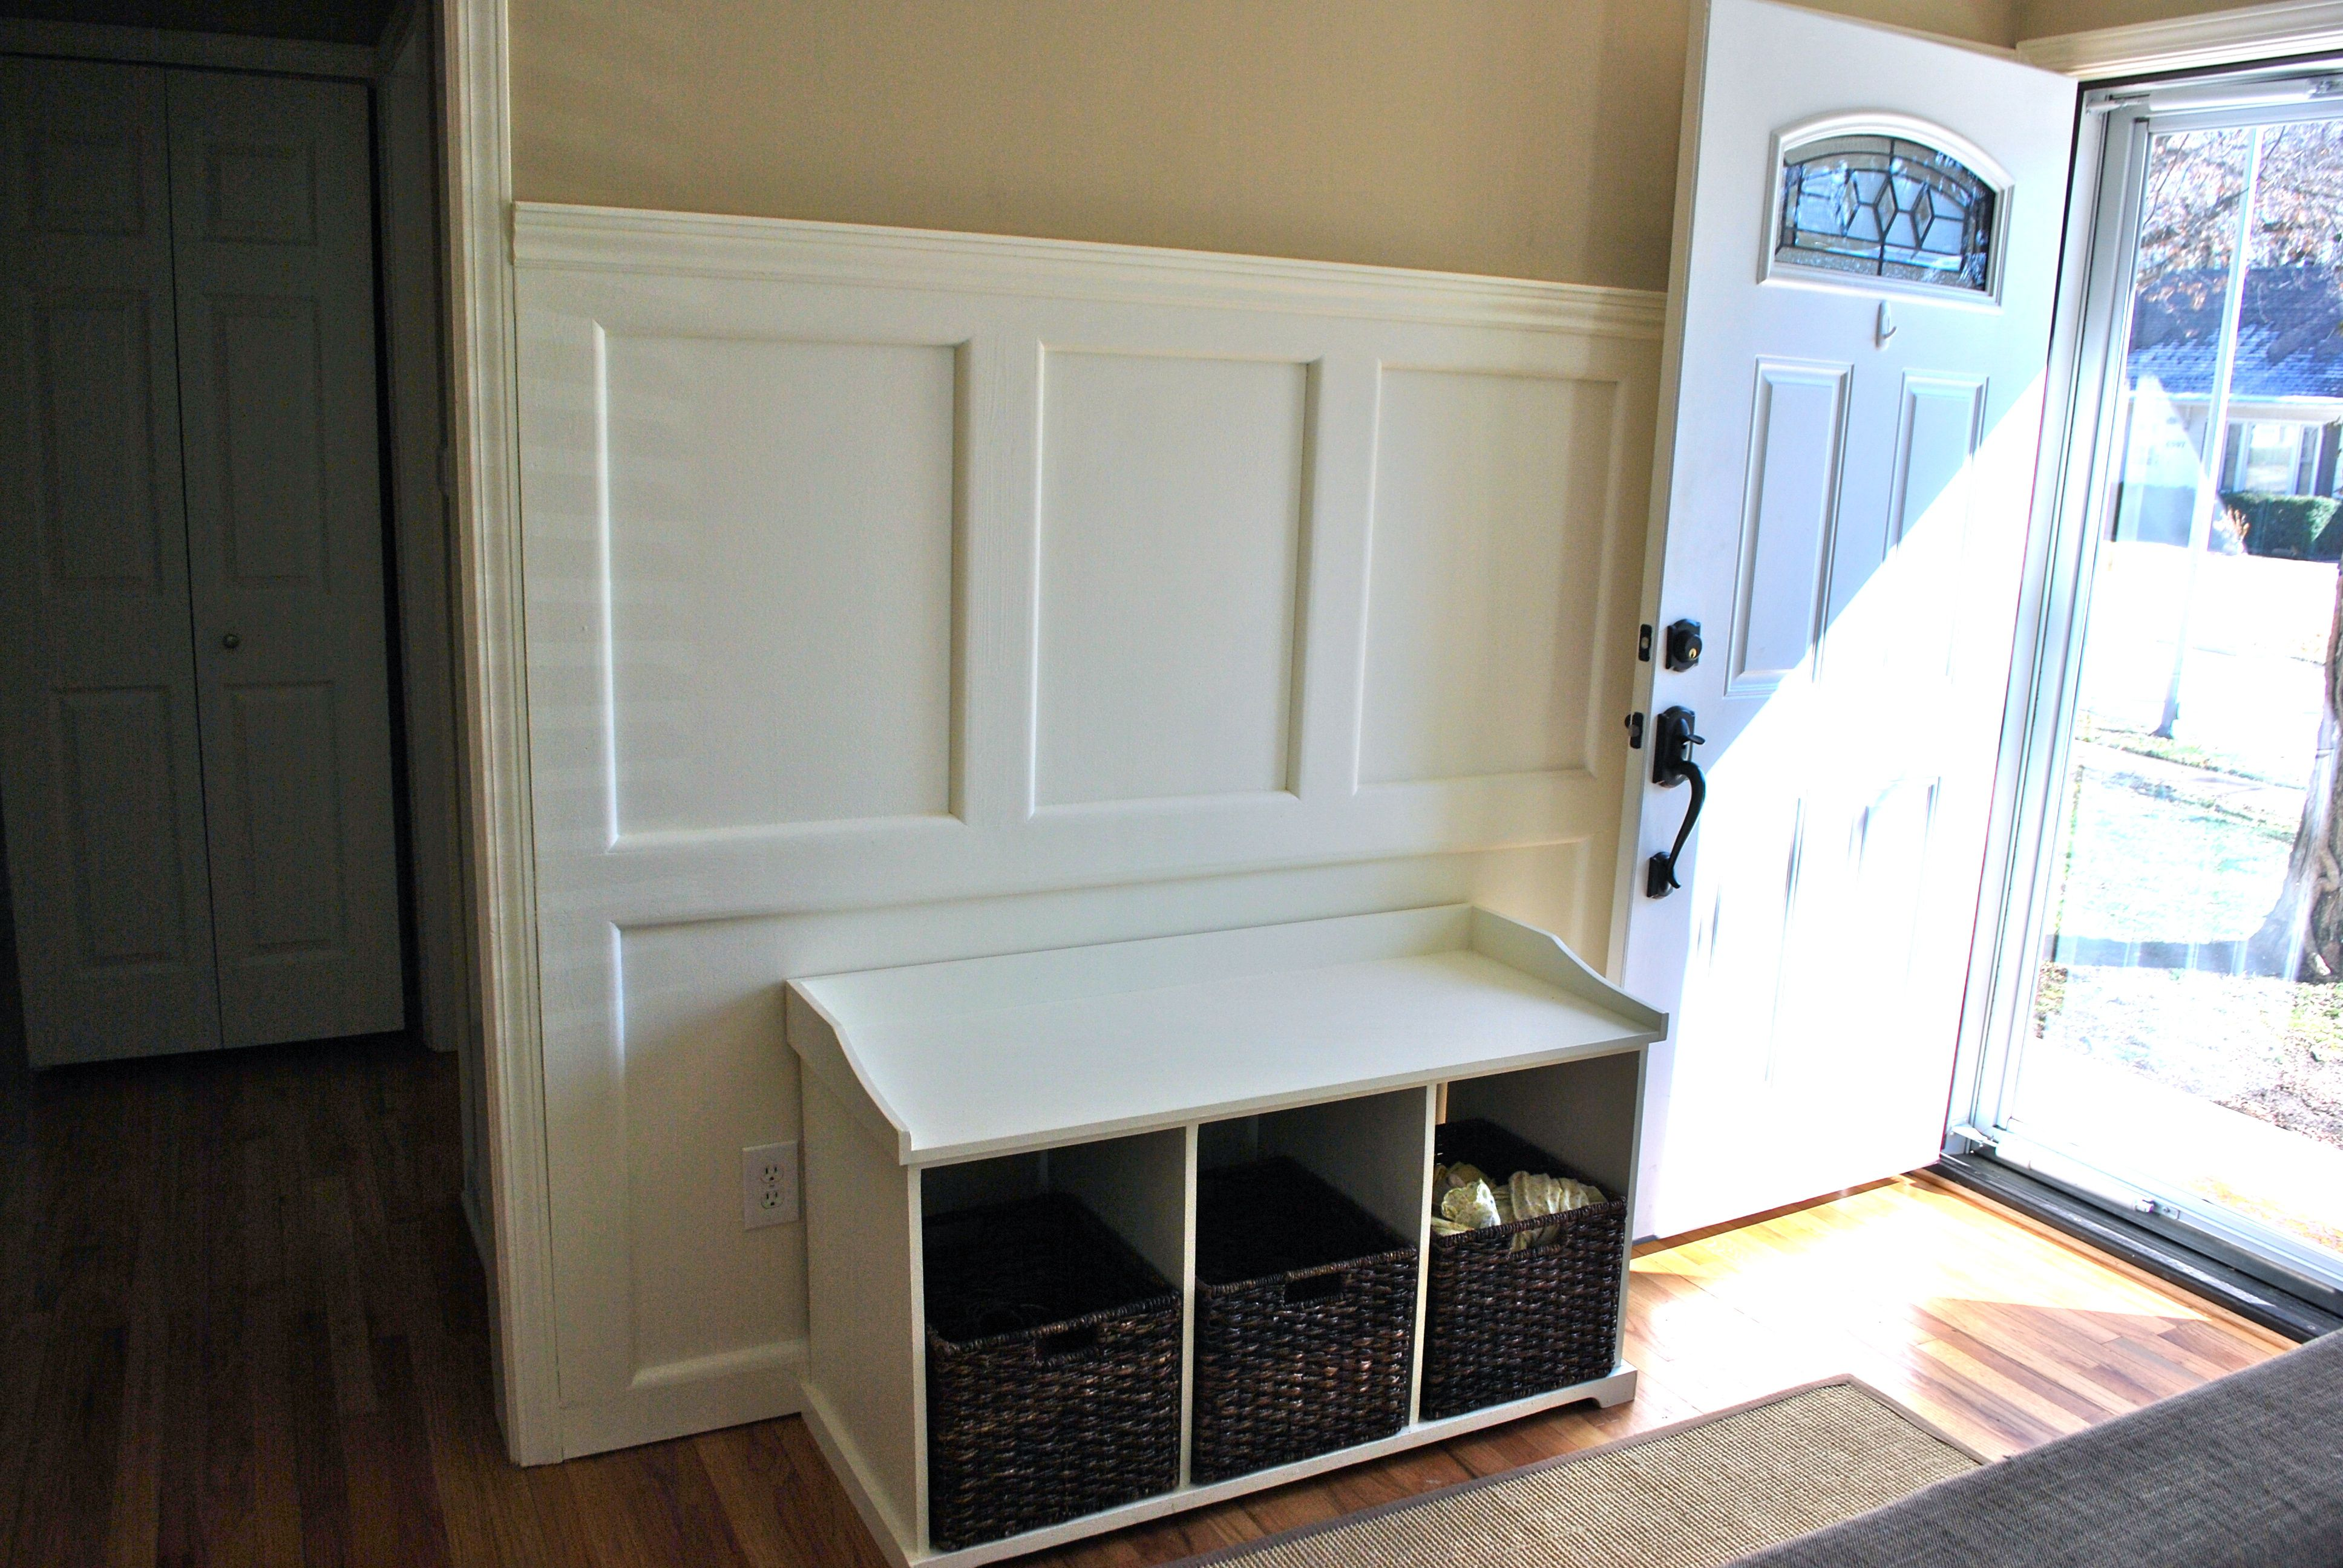 Creating an entryway phase entryway storage storage ideas and